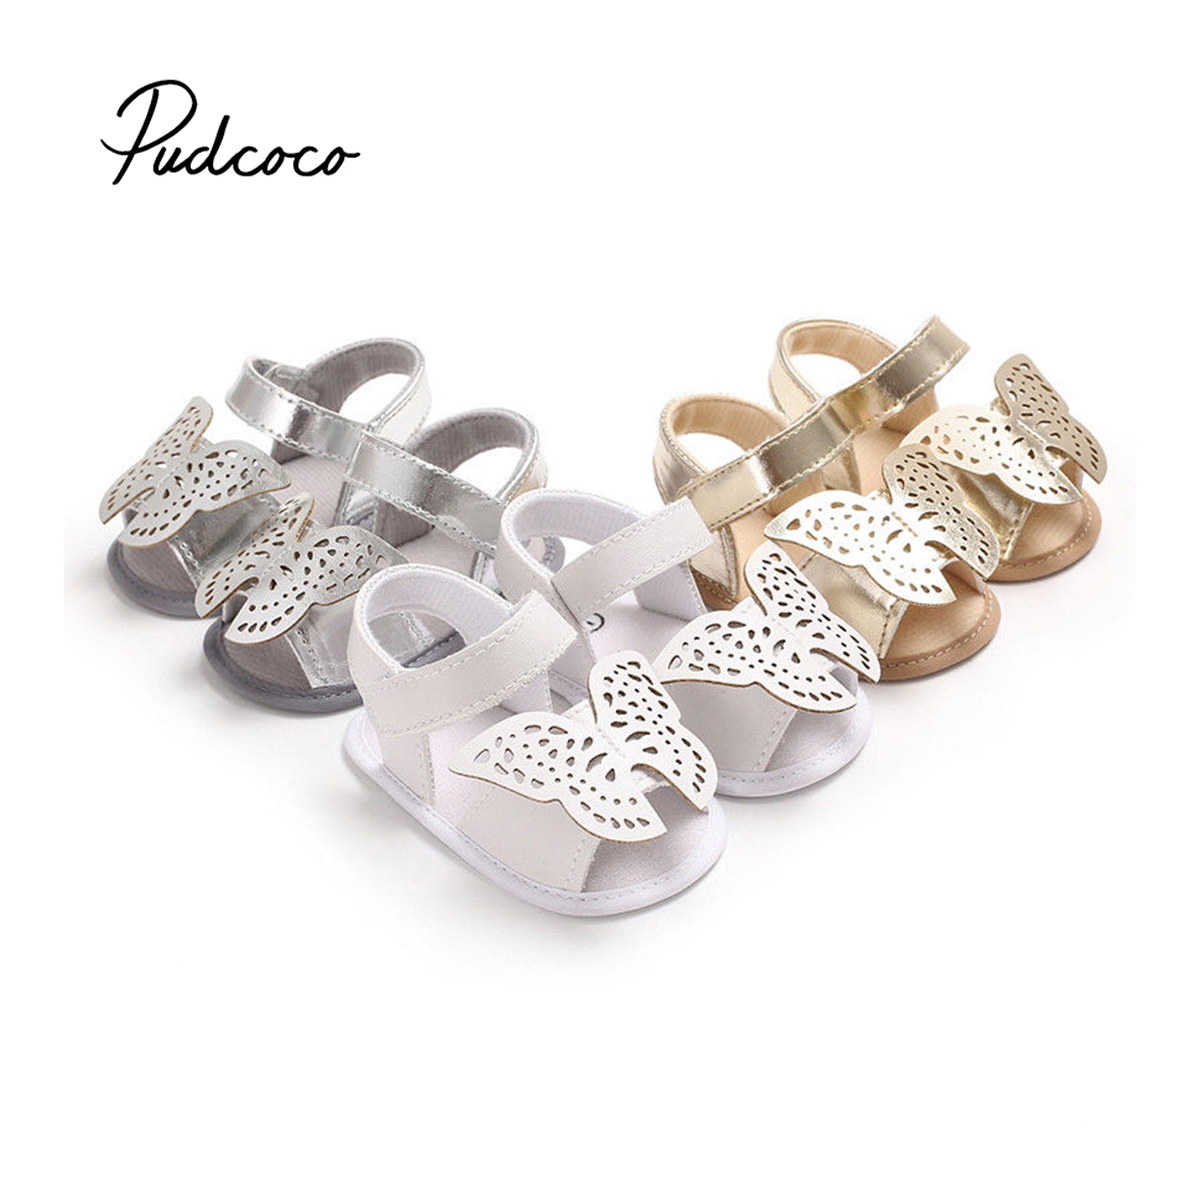 Pudcoco 2018 Newborn Baby Boys Girls Sandals Soft Sole Crib Shoes Cute Butterfly Summer Clogs